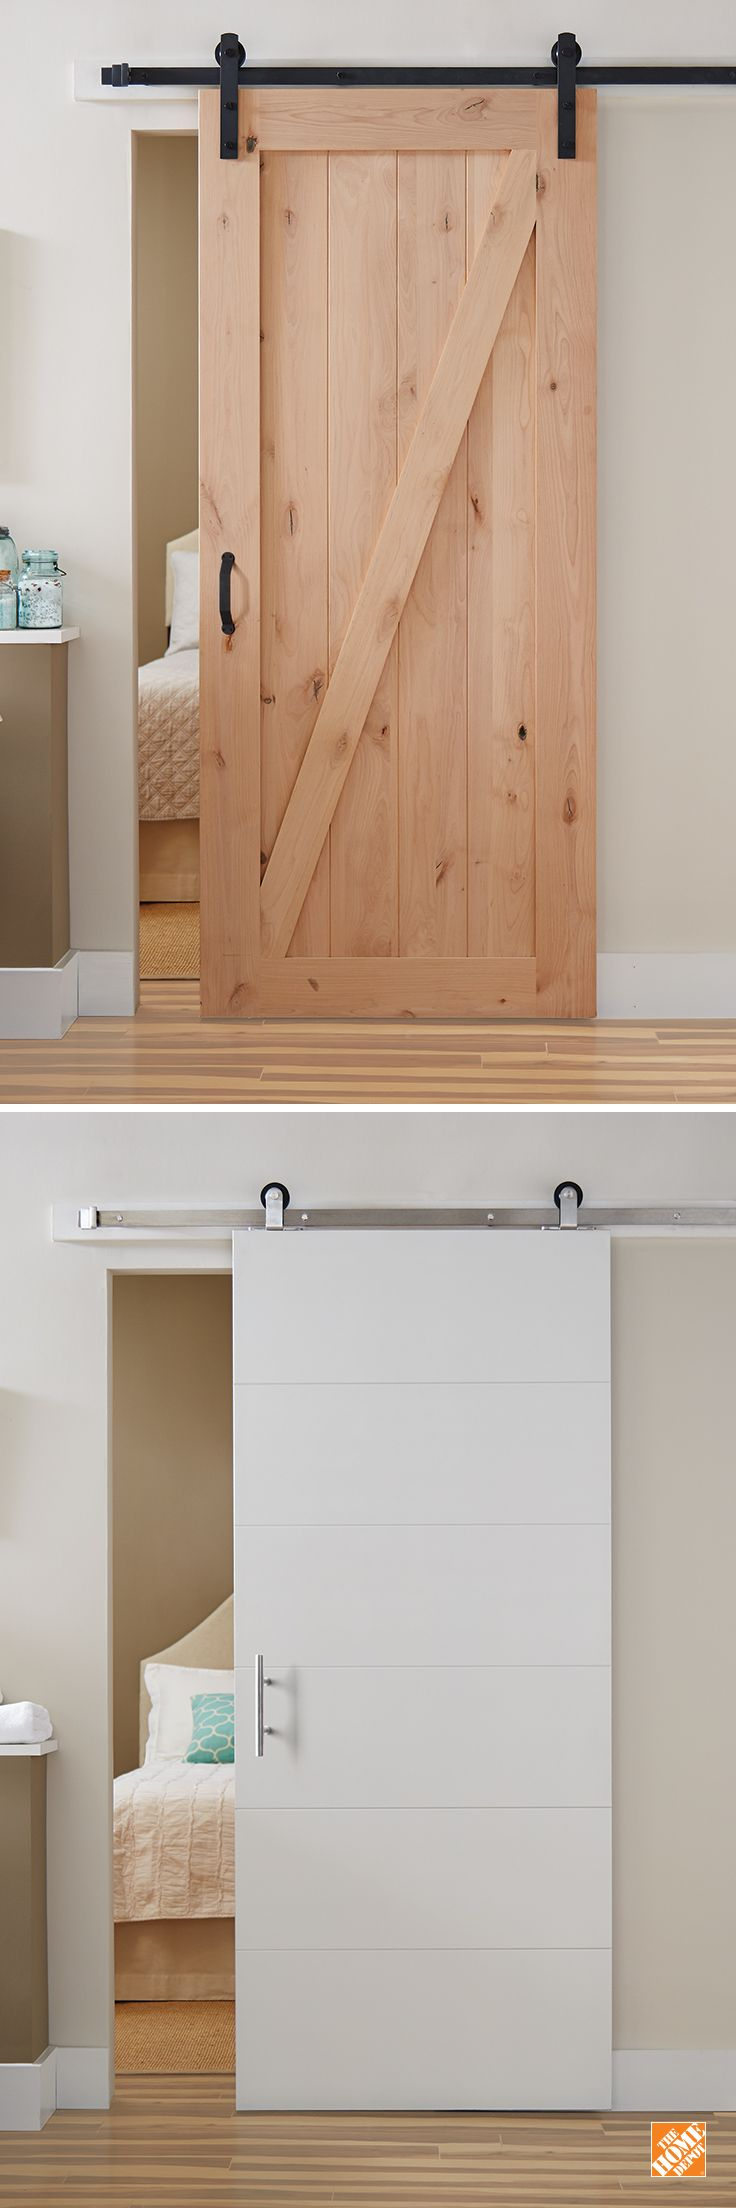 If you're looking for a simple home upgrade, all-in-one barn door kits are a…